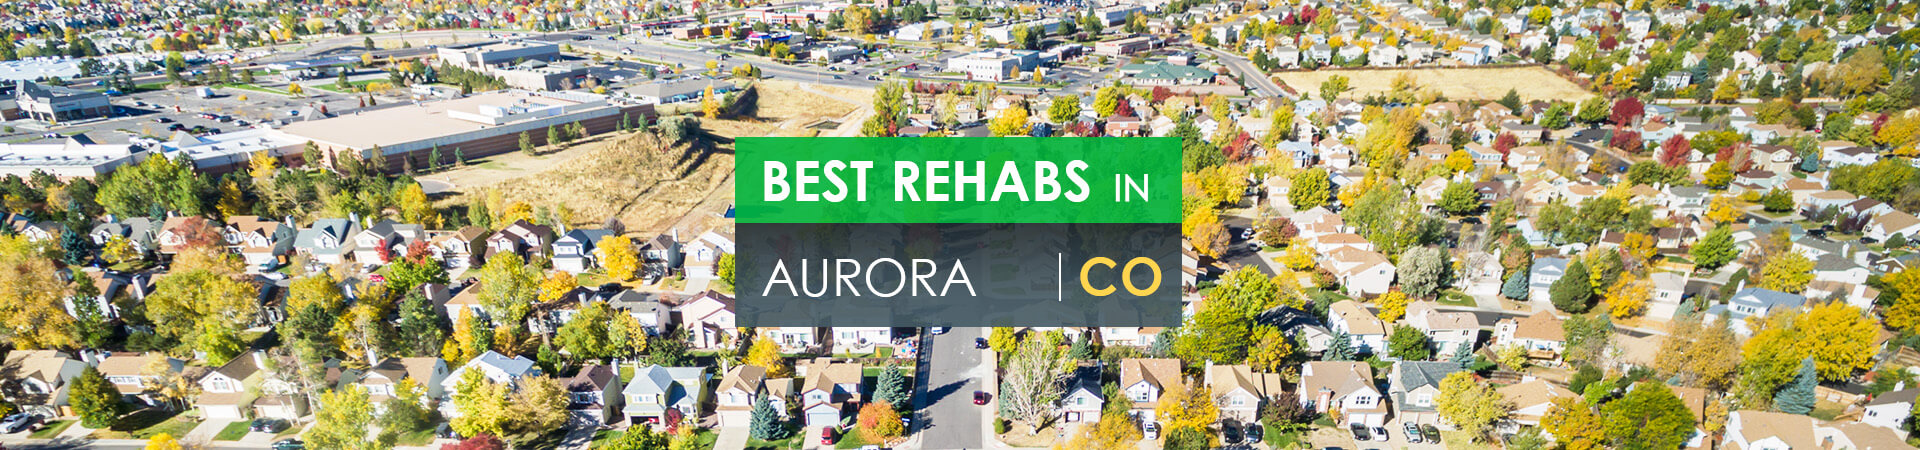 Best rehabs in Aurora, CO